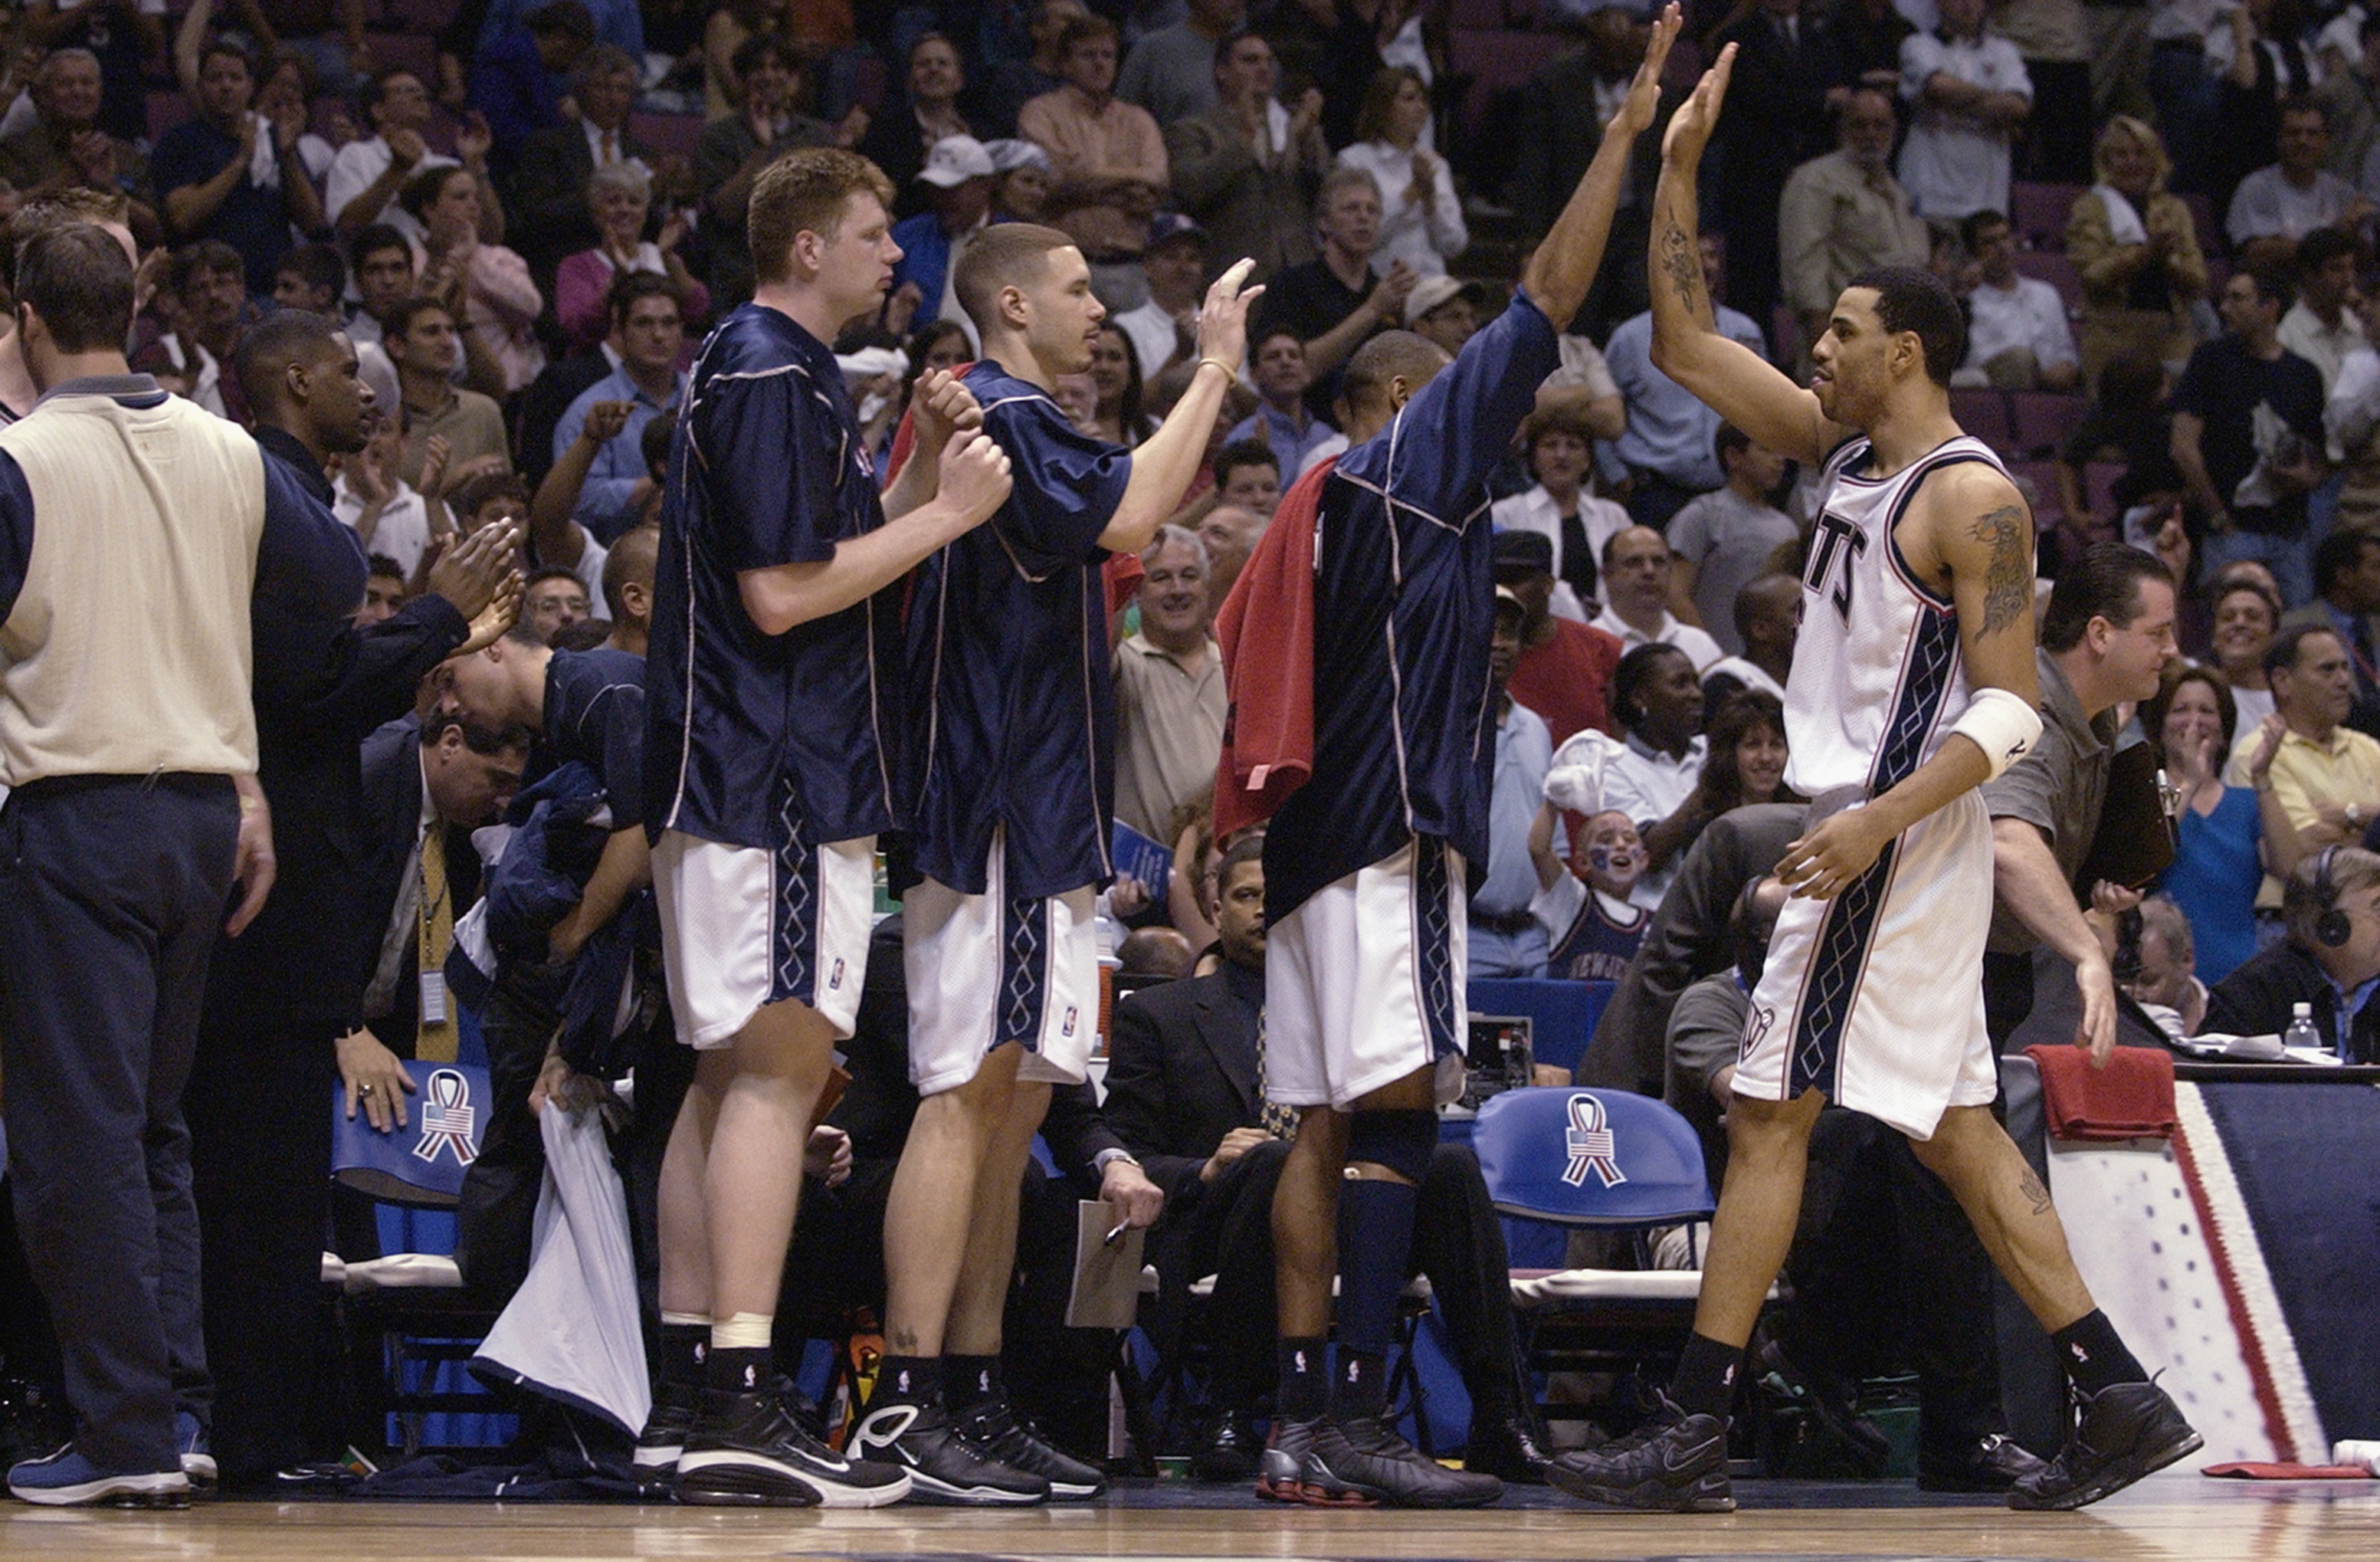 EAST RUTHERFORD, NJ - MAY 29:  Forward Kenyon Martin #6 of the New Jersey Nets returns to congratulations from his teammates on the bench in Game five of the Eastern Conference Finals against the Boston Celtics during the 2002 NBA Playoffs at Continental